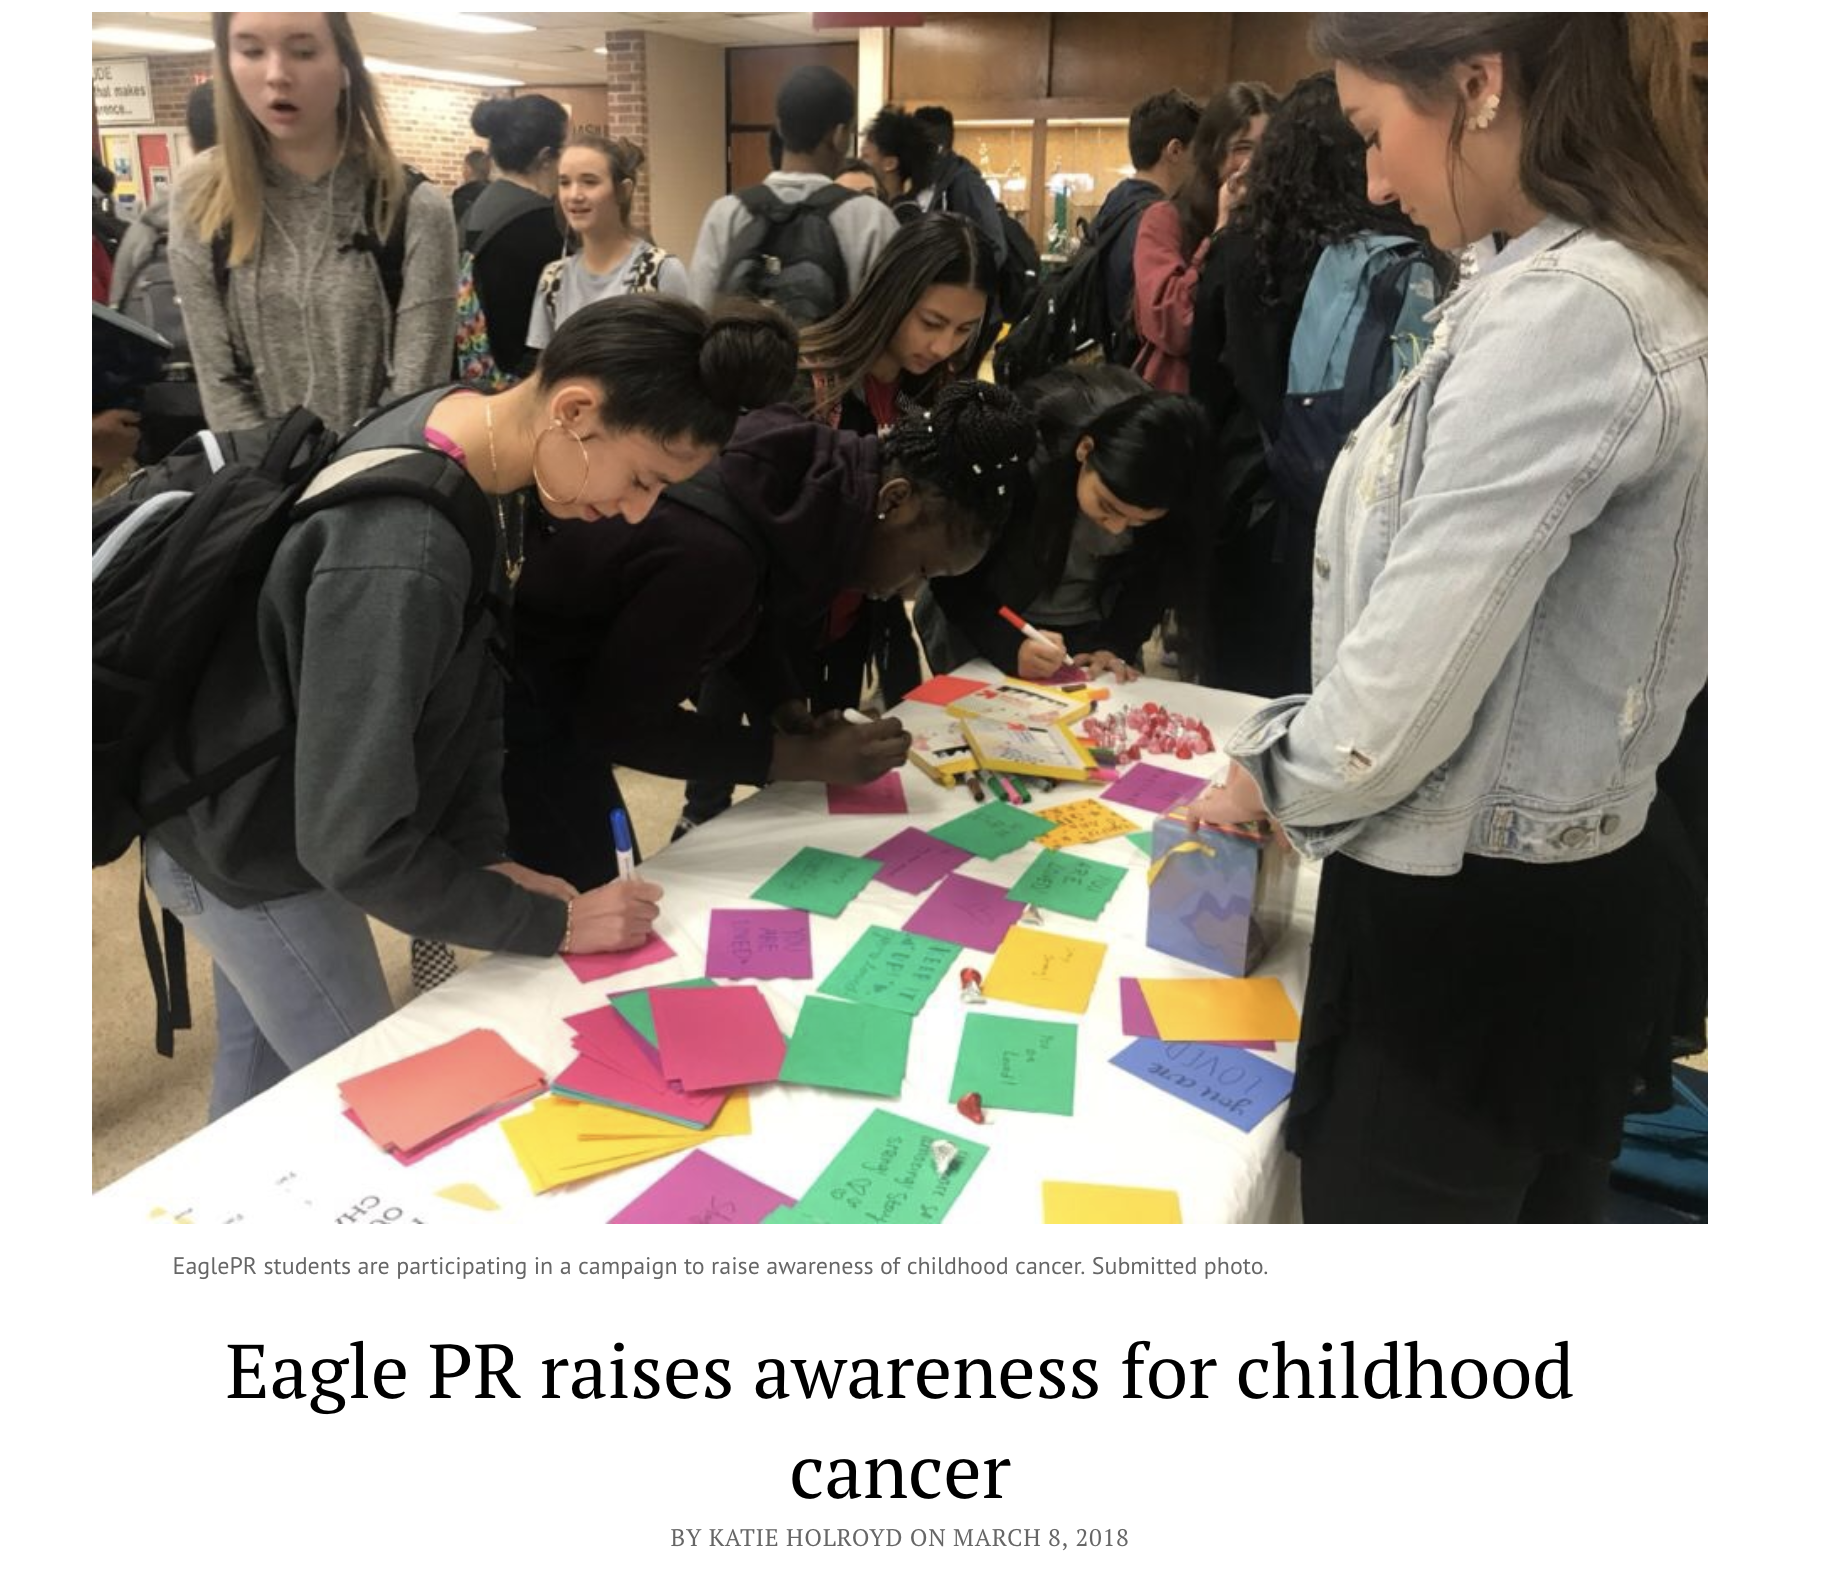 Eagle PR raises awareness for childhood cancer